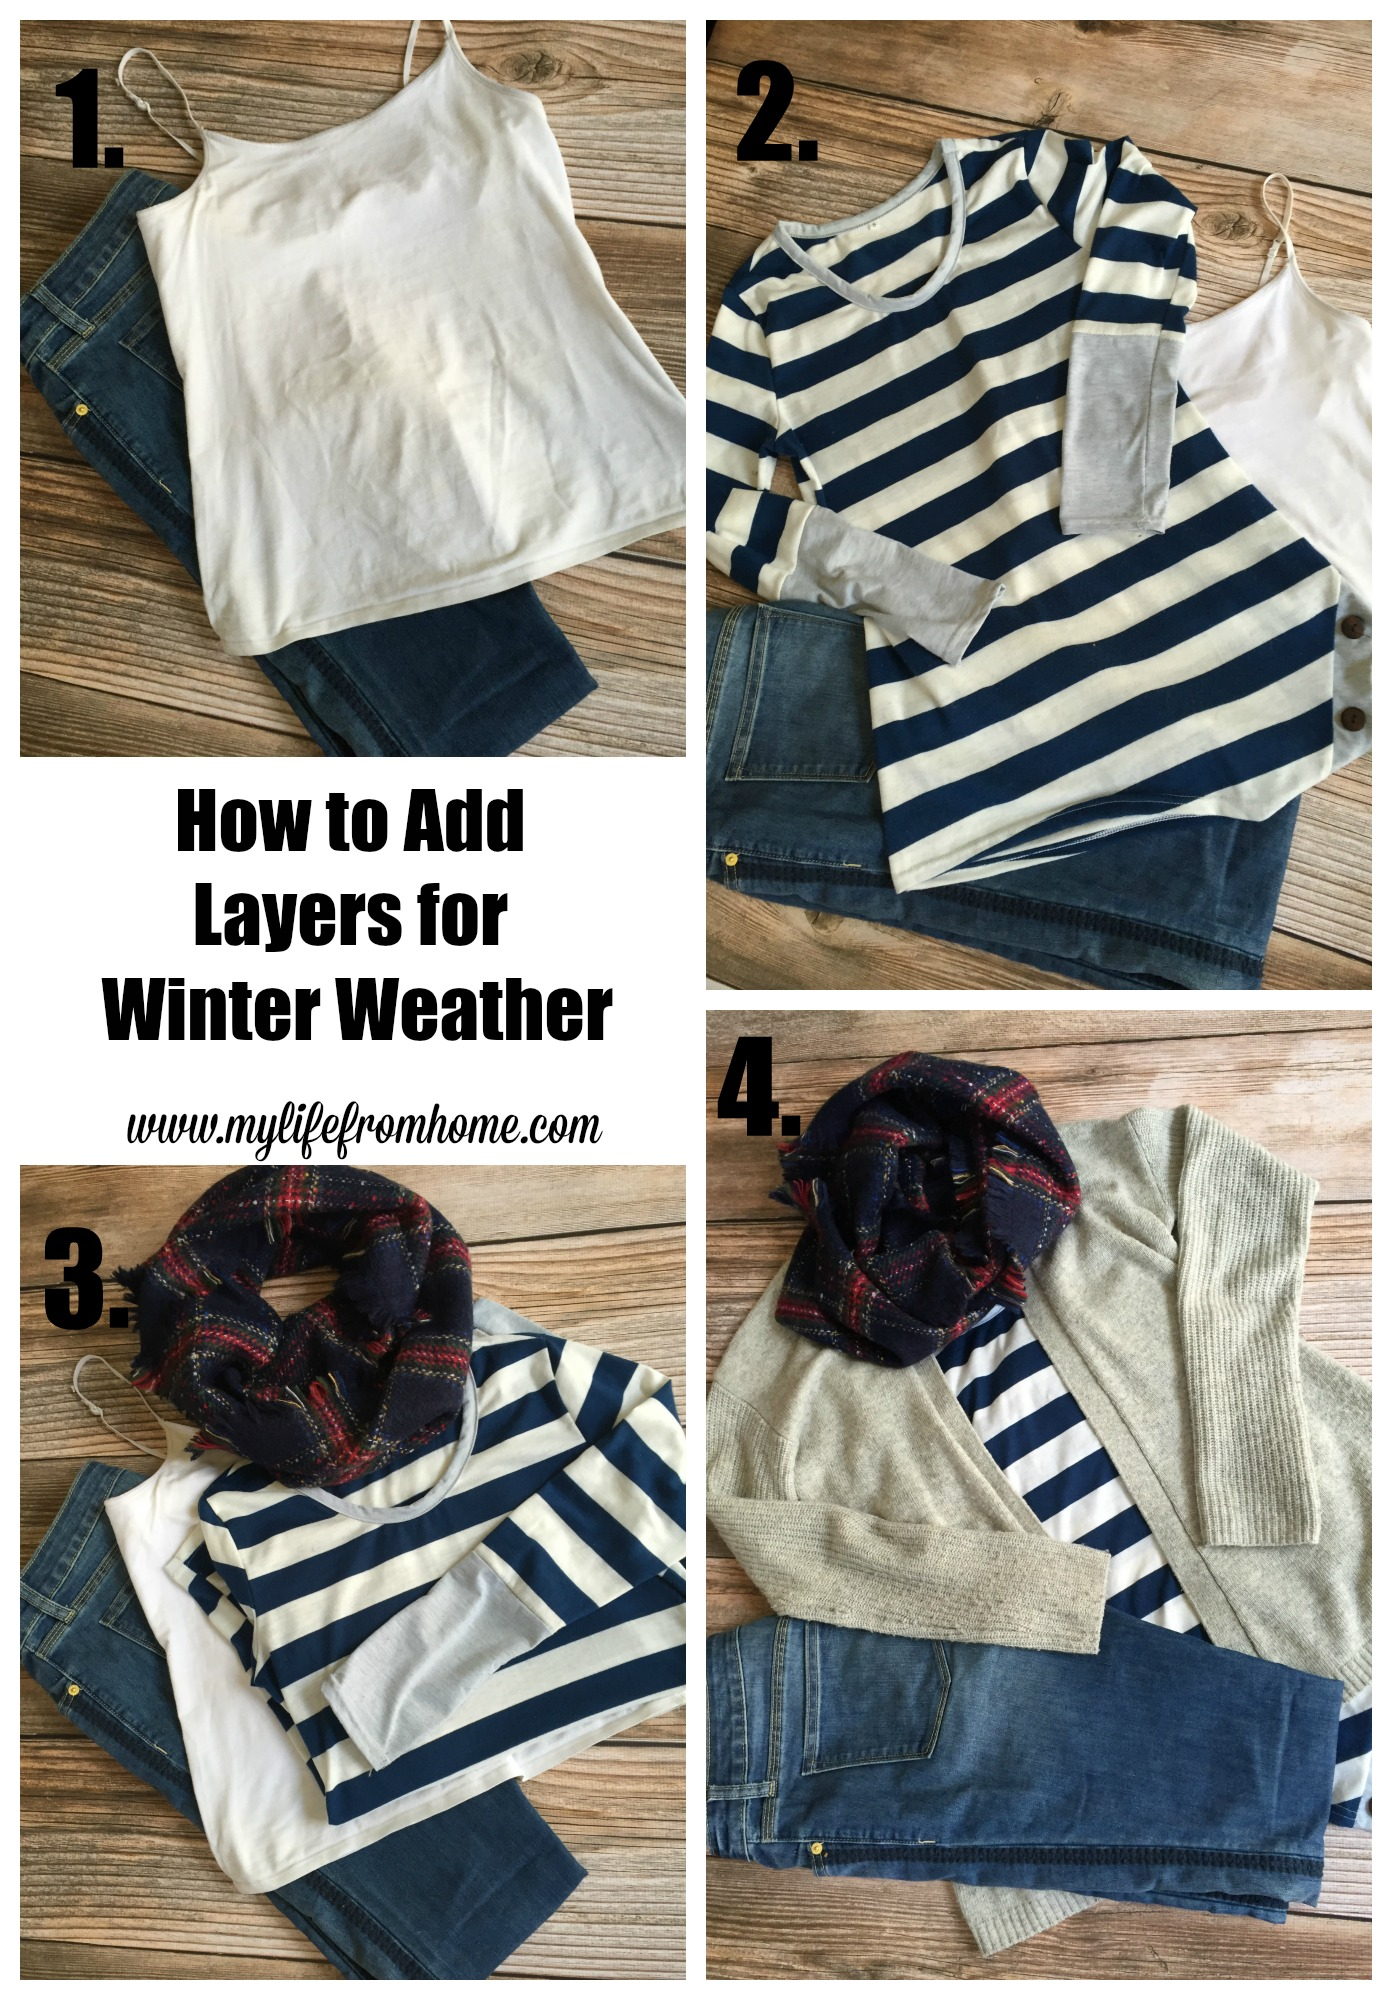 How to add Layers for Winter Weather by www.mylifefromhome.com